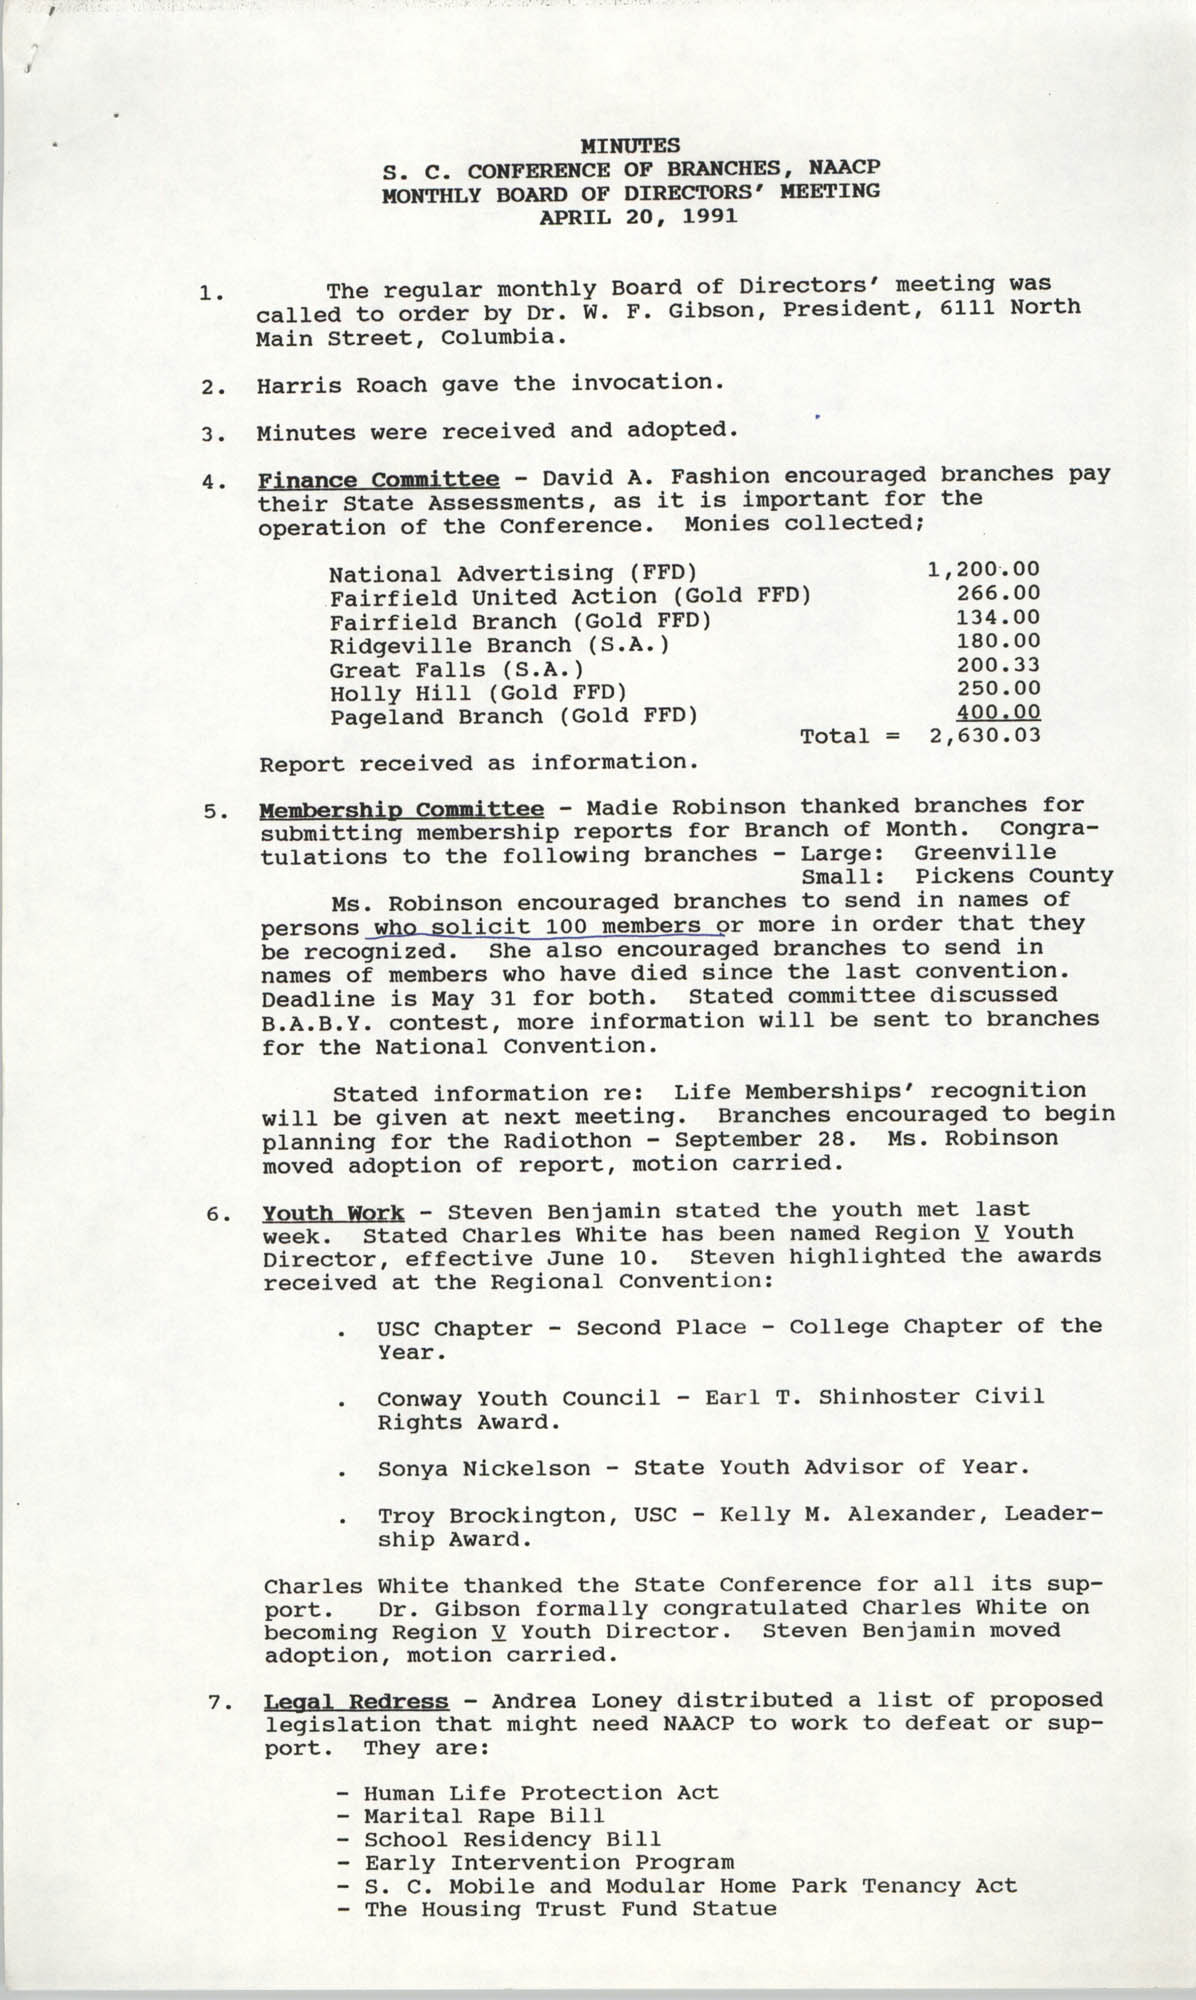 Minutes, South Carolina Conference of Branches of the NAACP, April 20, 1991